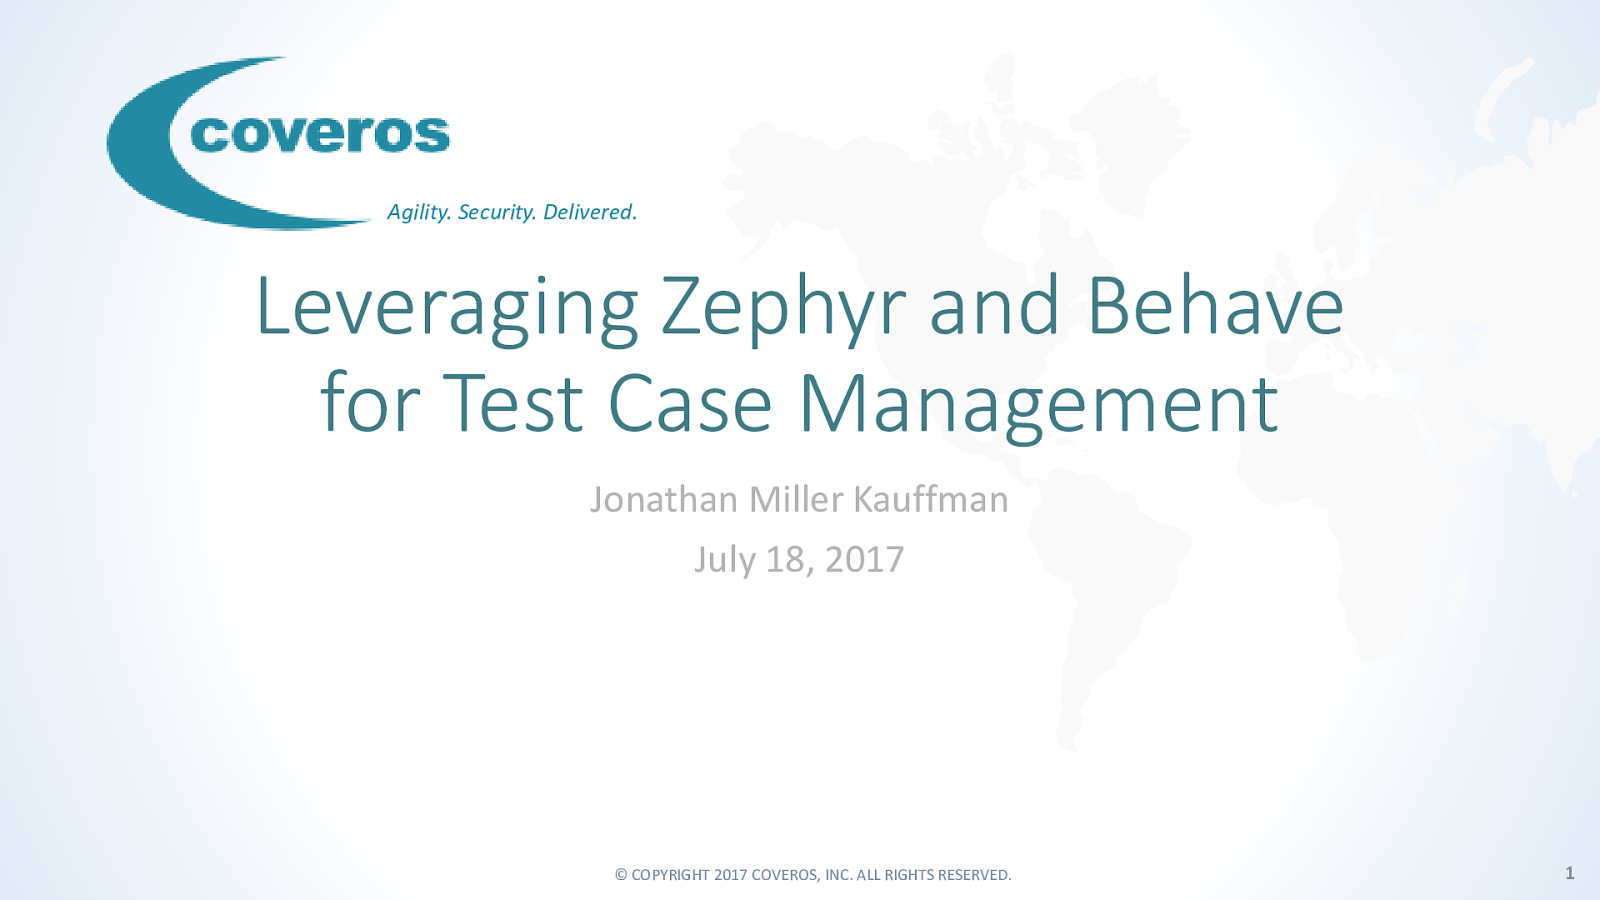 Leveraging Zephyr and Behave for Test Case Management